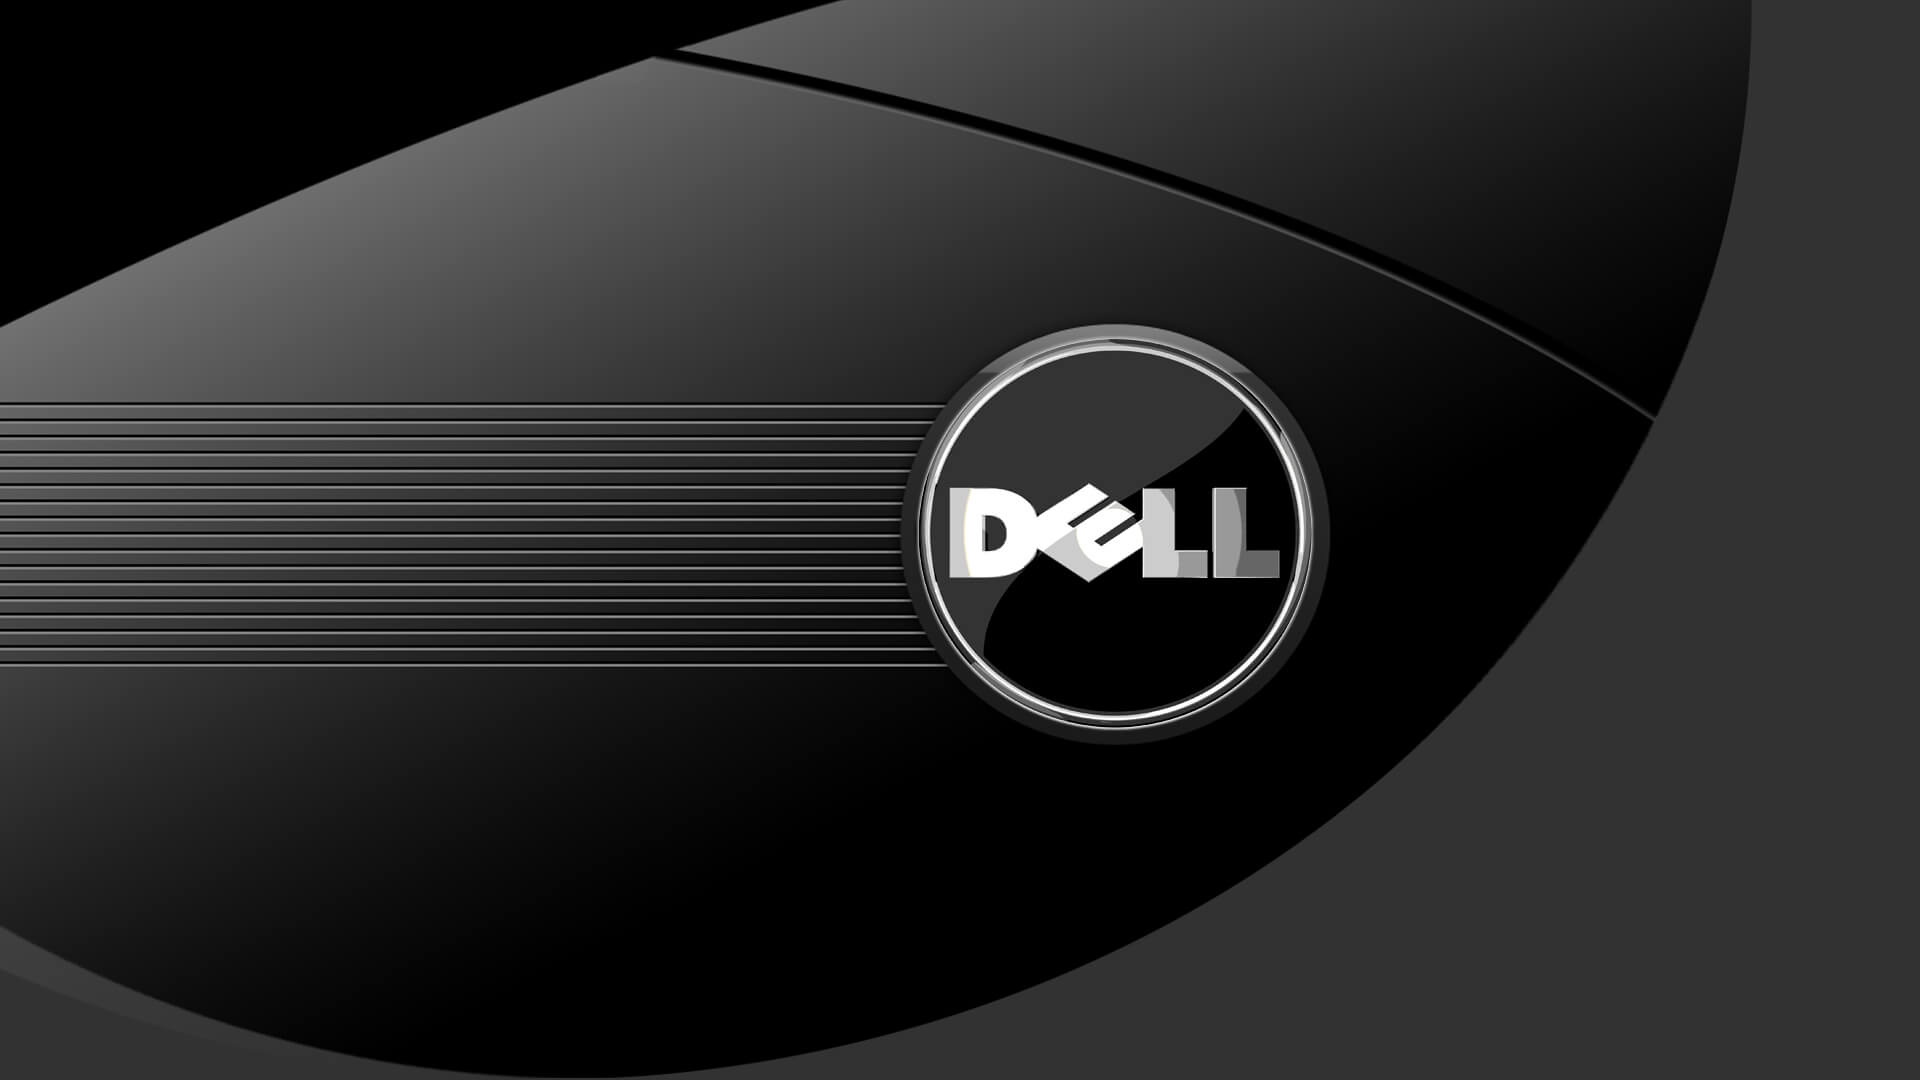 hdd Dell